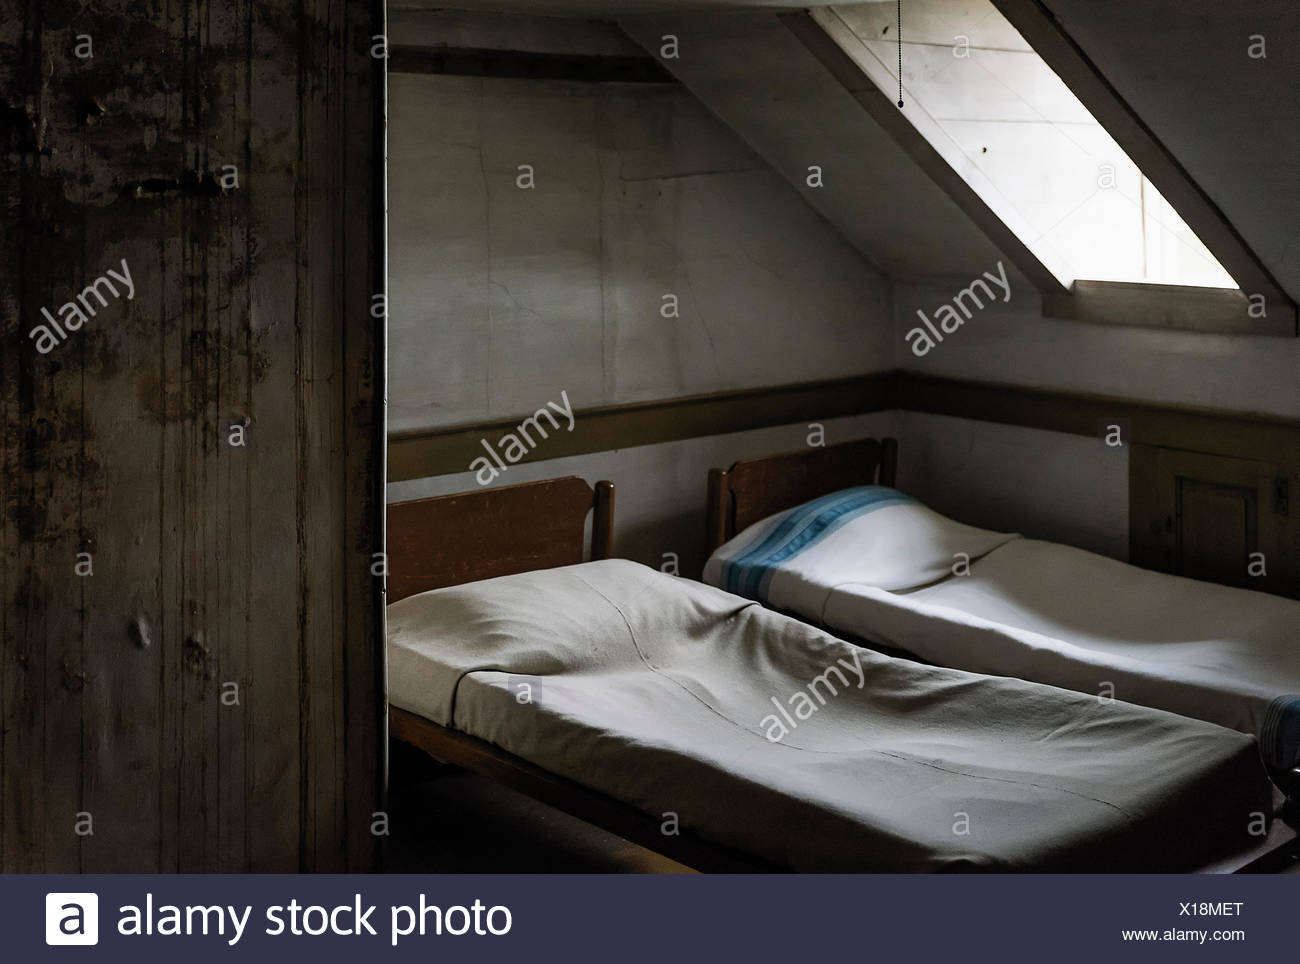 Austere bedroom with skylight. - Stock Image